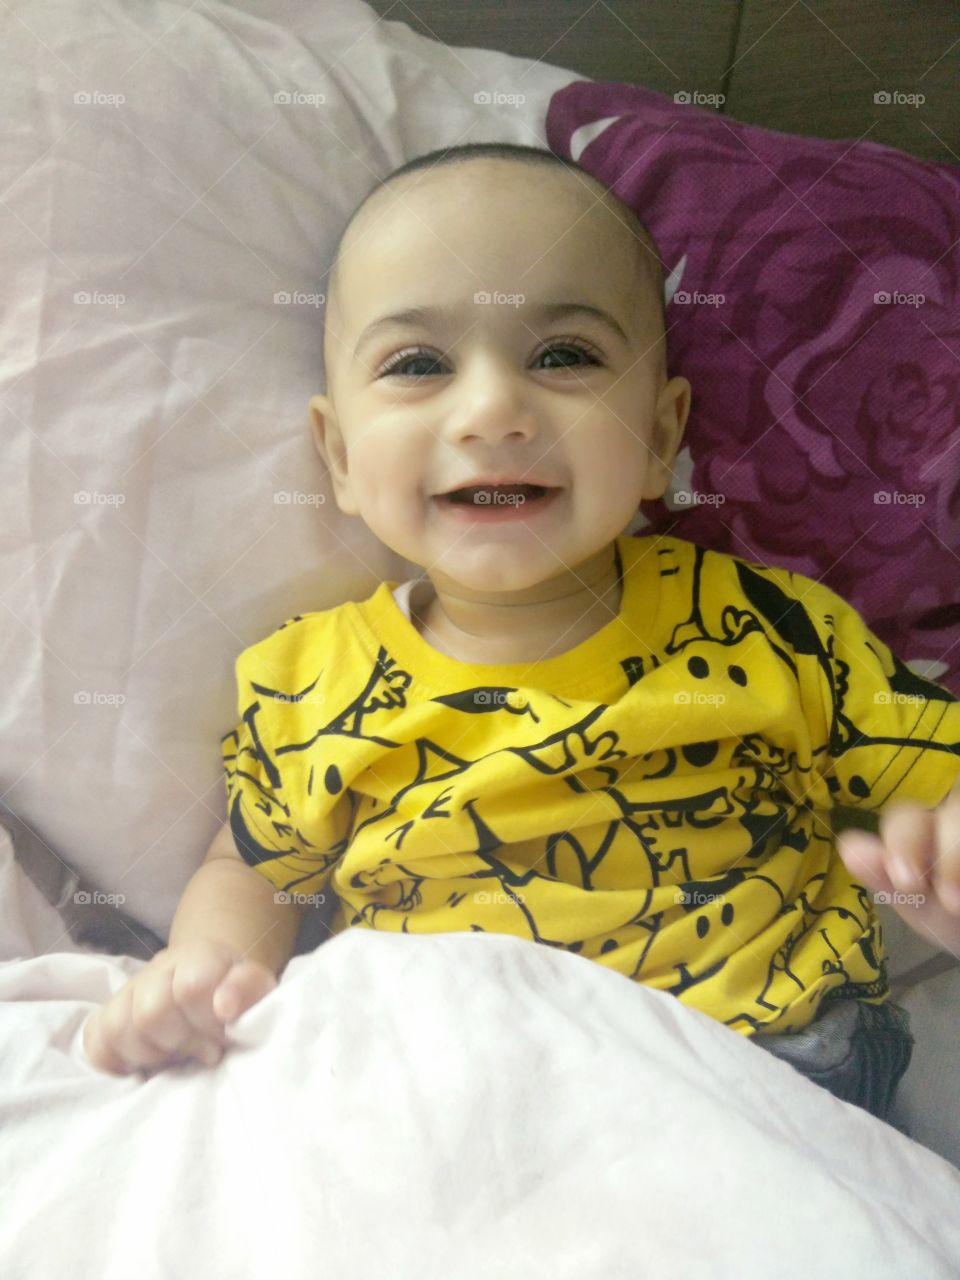 High angle view of baby boy on bed and laughing